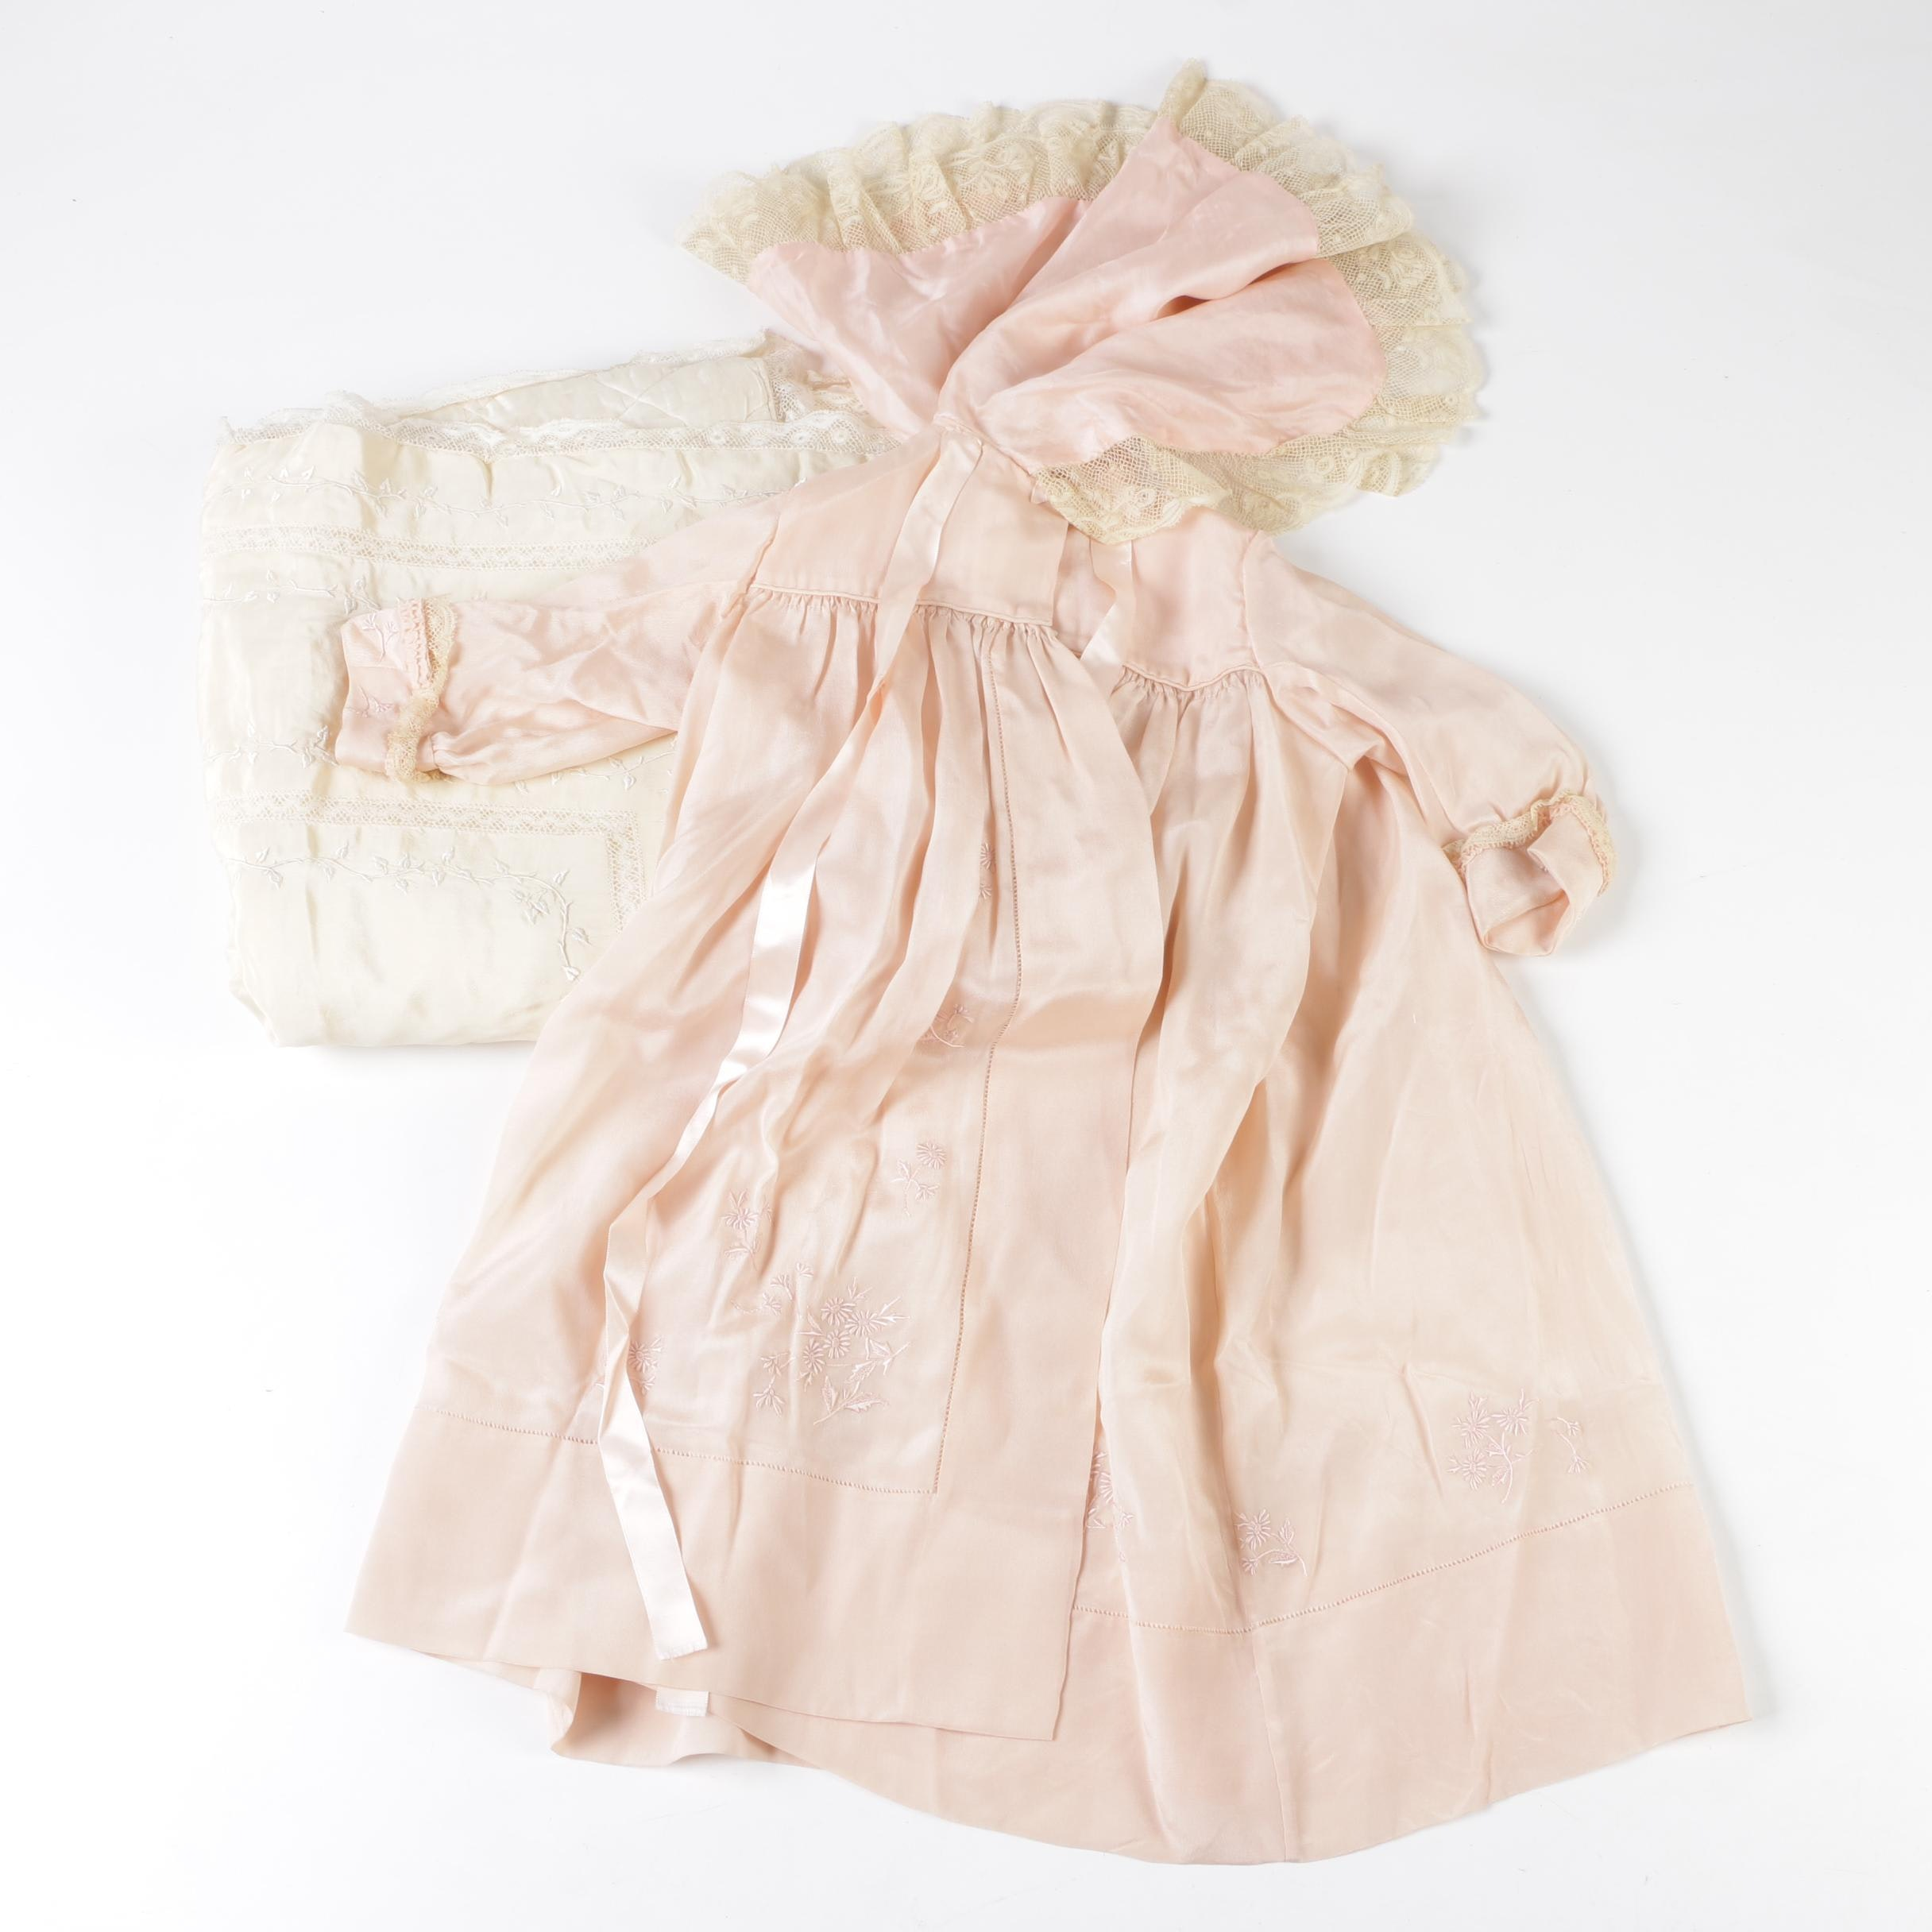 Infant Embroidered Silk Pink Cape Collar Robe and Ivory Cradle Quilt, circa 1930